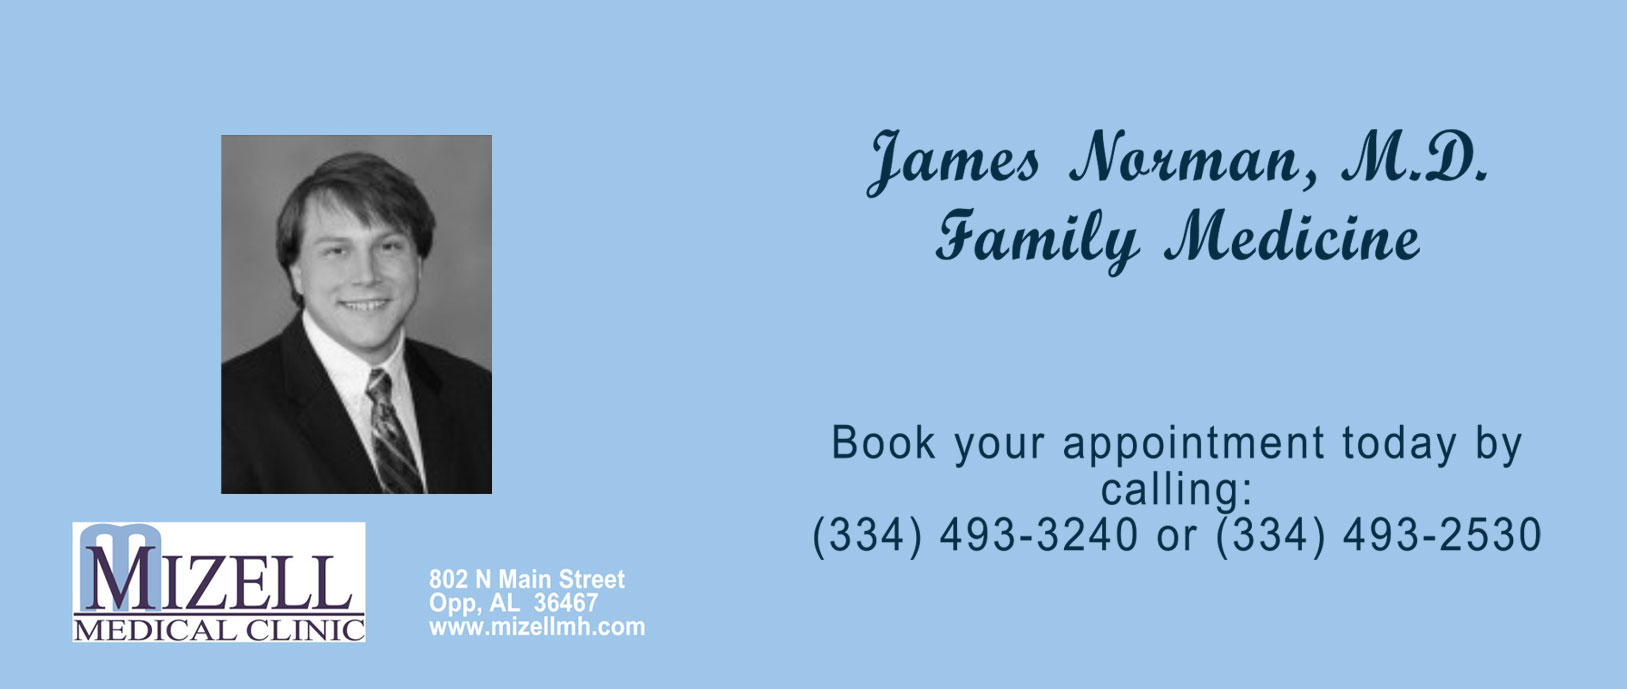 James Normal, M.D. Family Medicine Book your appointment today by calling: (334) 493-3240 or (334) 493-2530